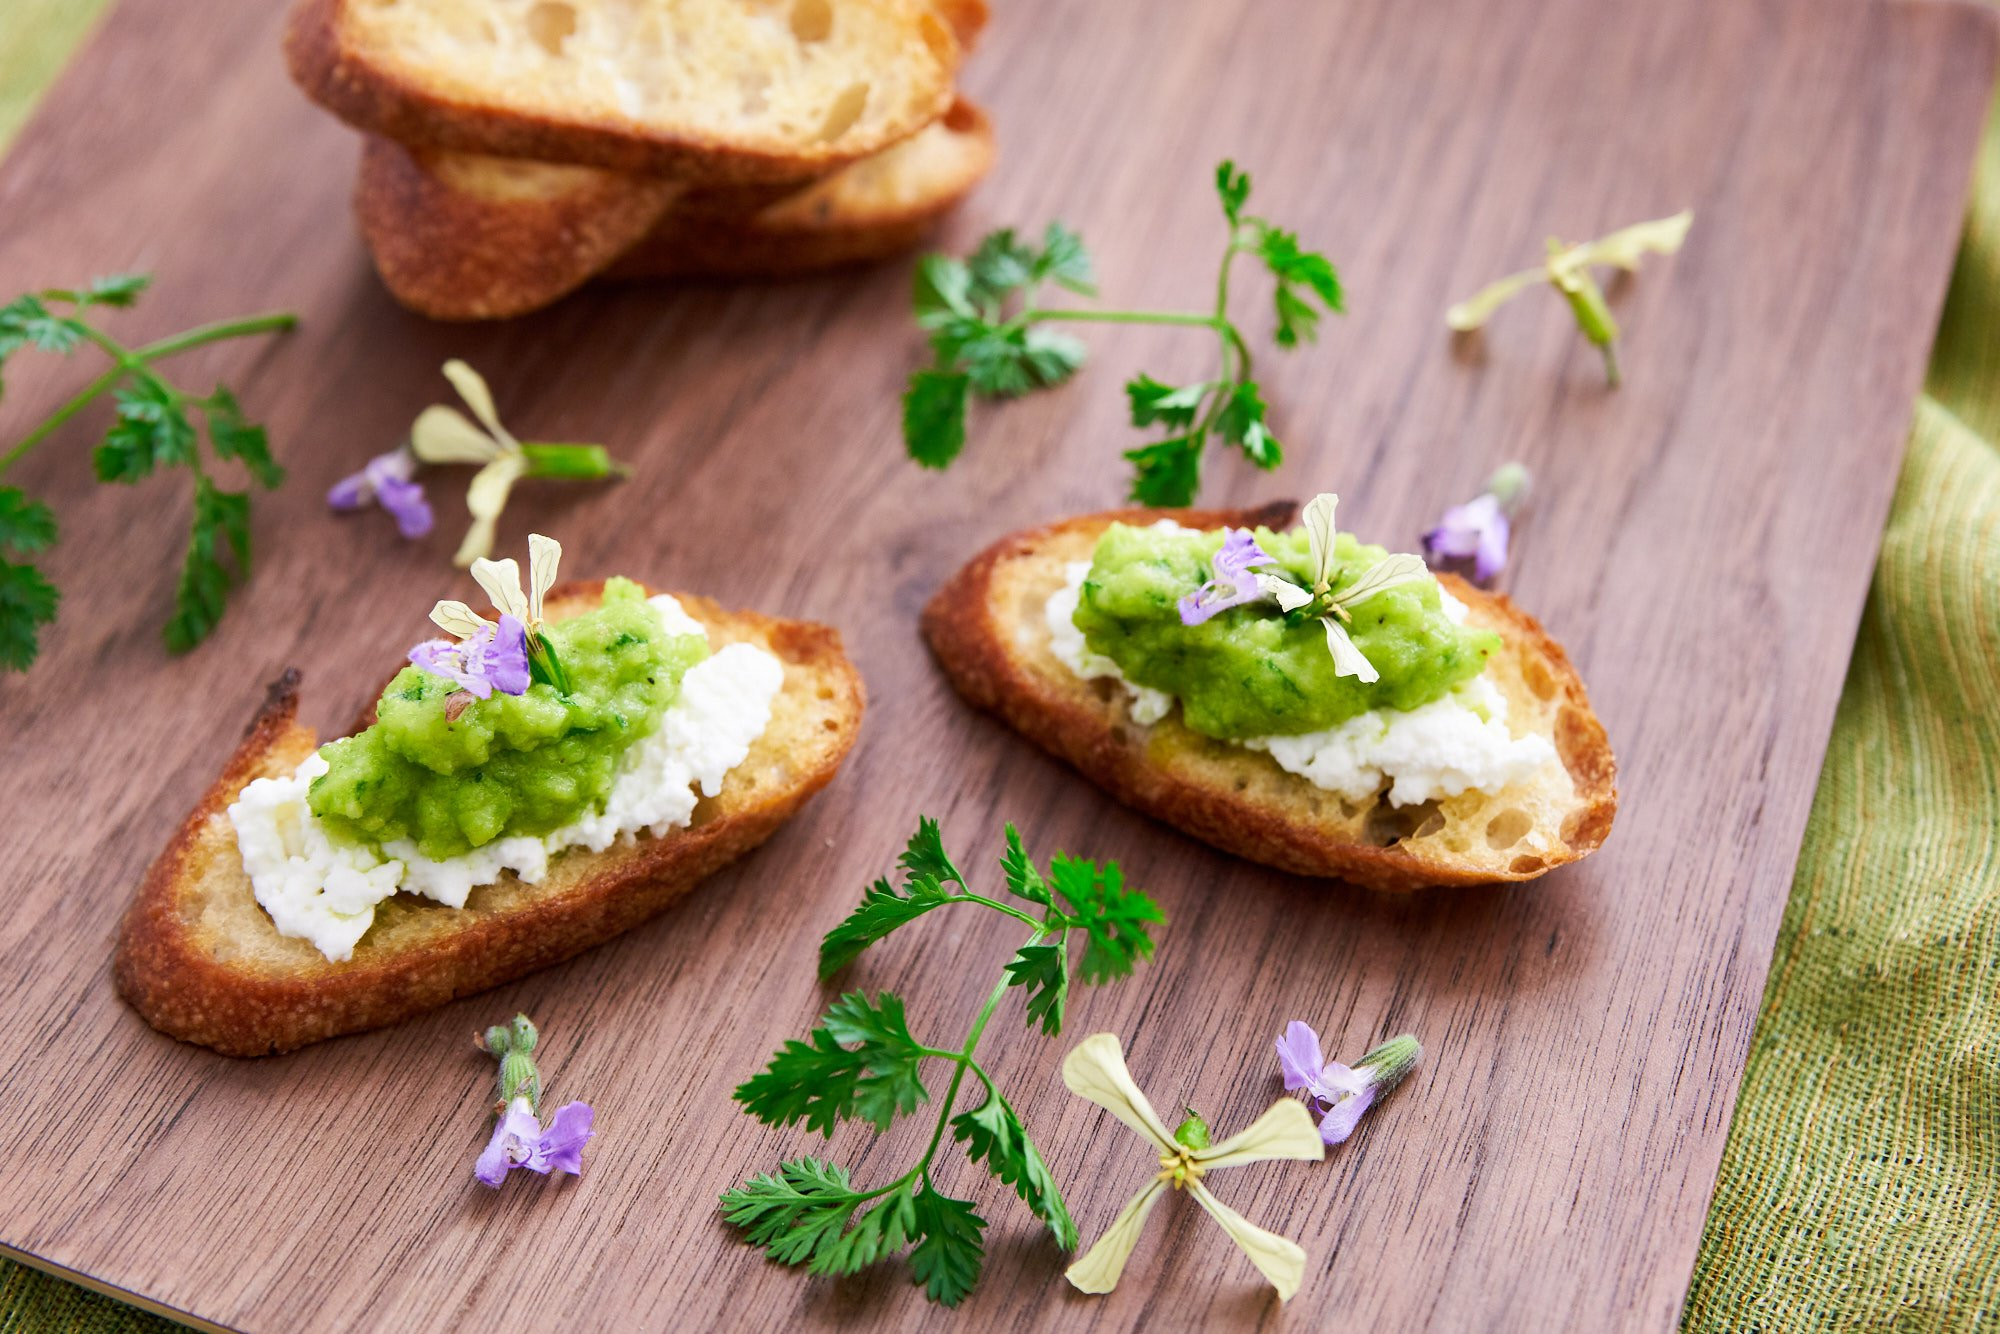 Perfect spring green pea pesto with ricotta spread on crostini.